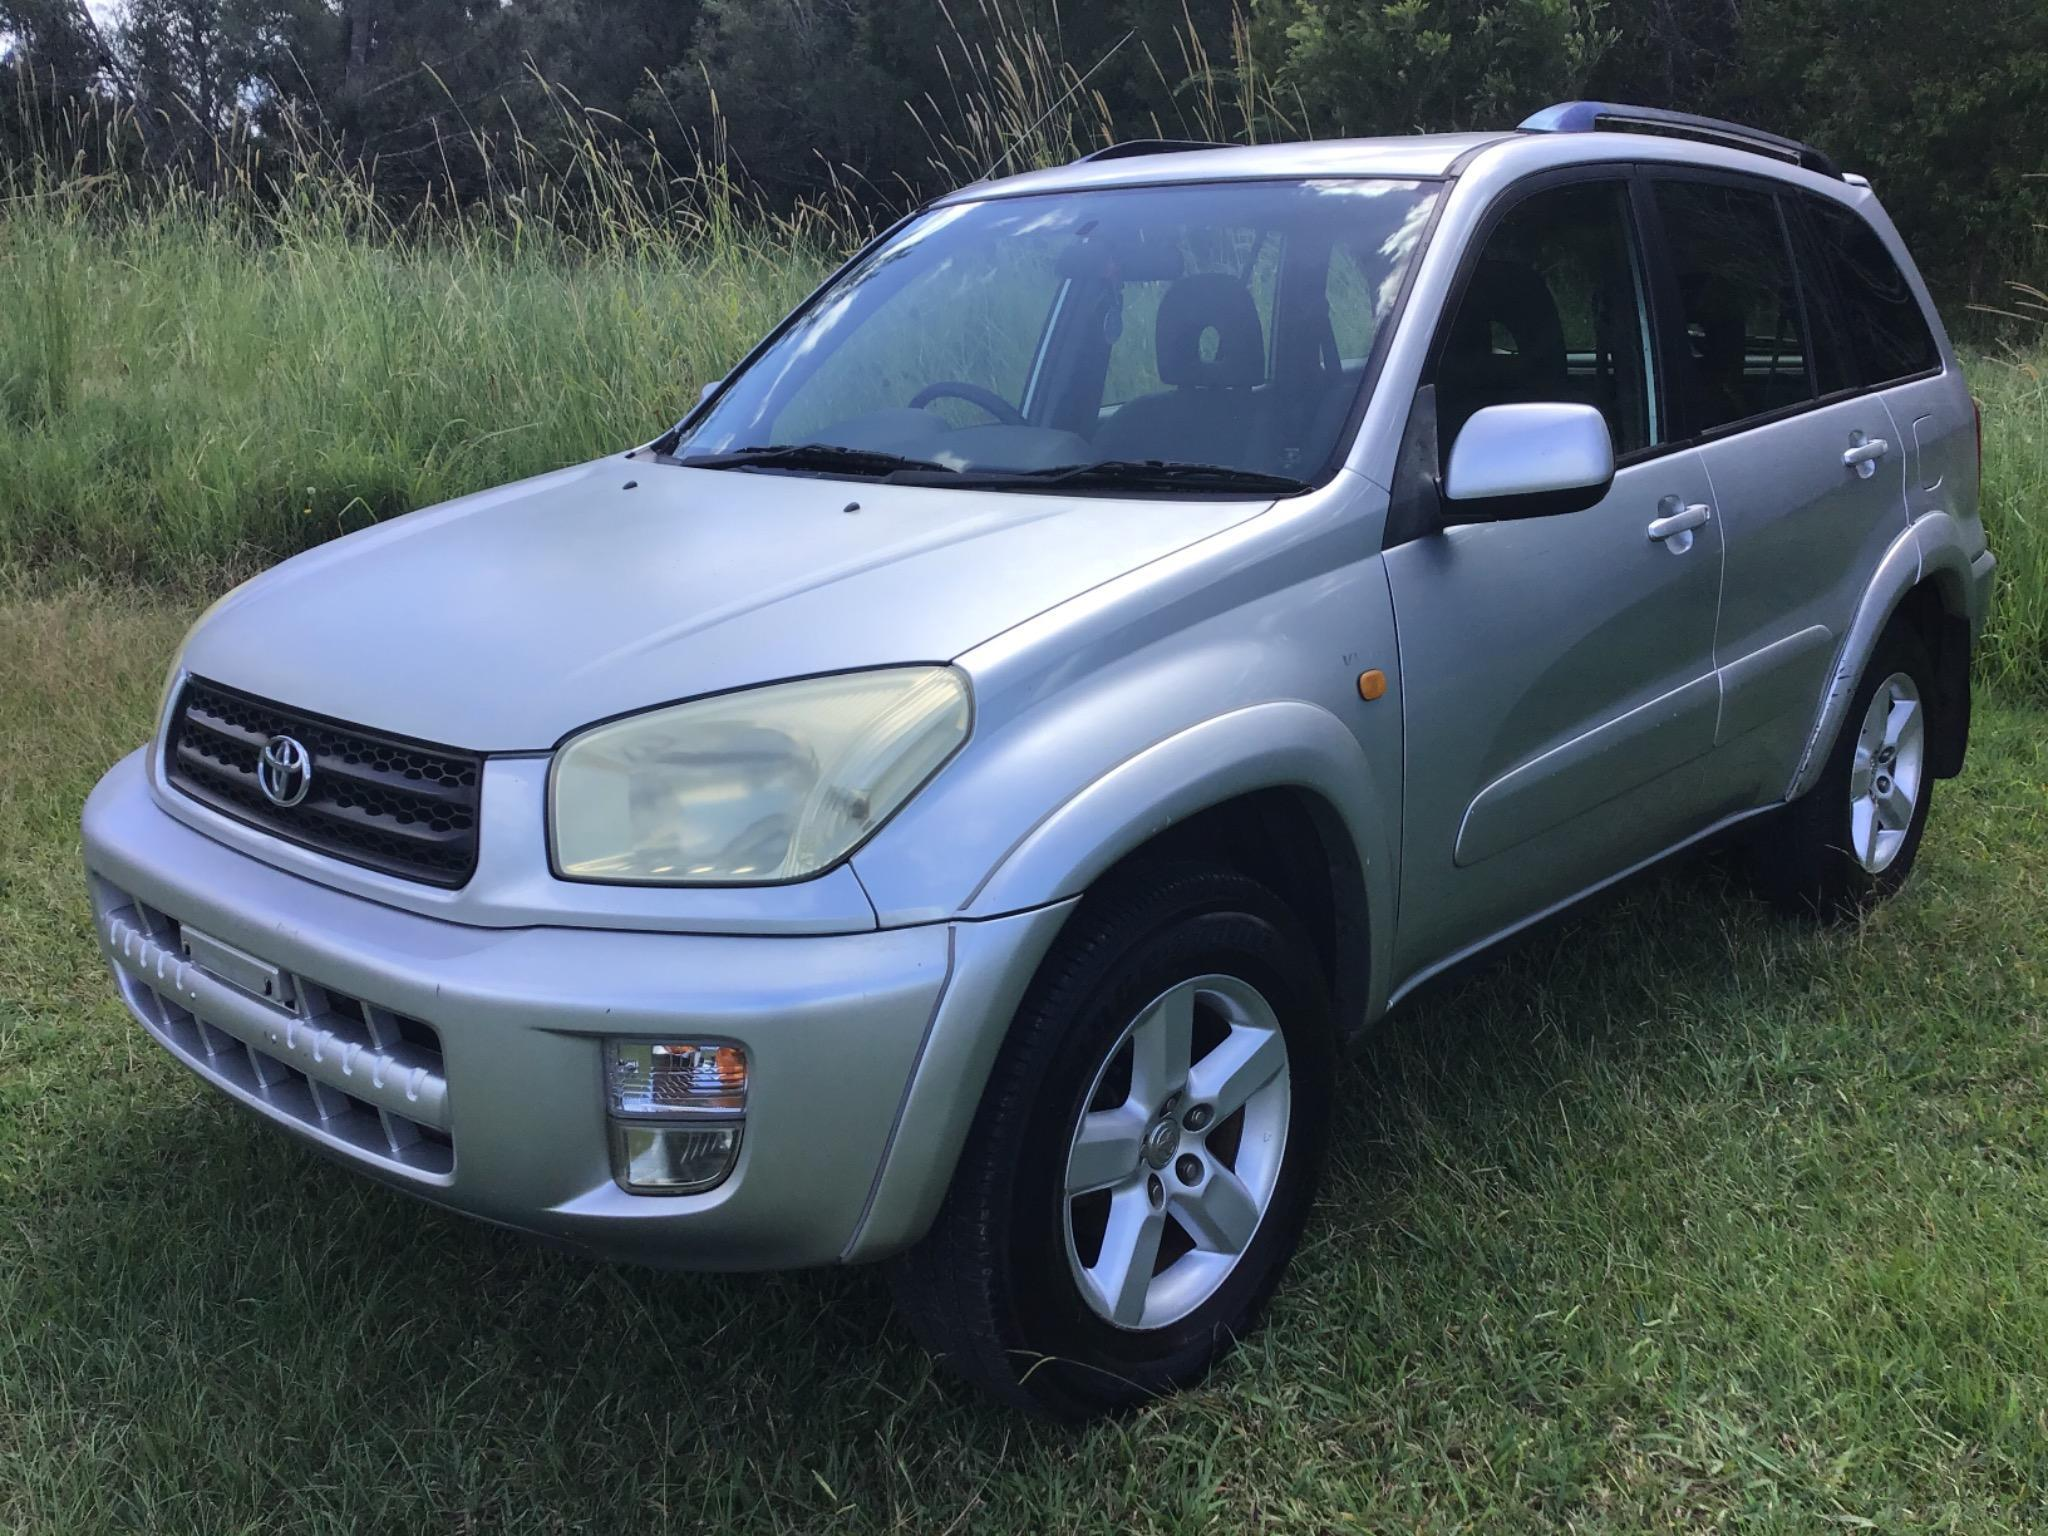 2001 Toyota RAV4 ACA21R Cruiser Wagon 5dr Auto 4sp 4x4 2.0i Picture 8